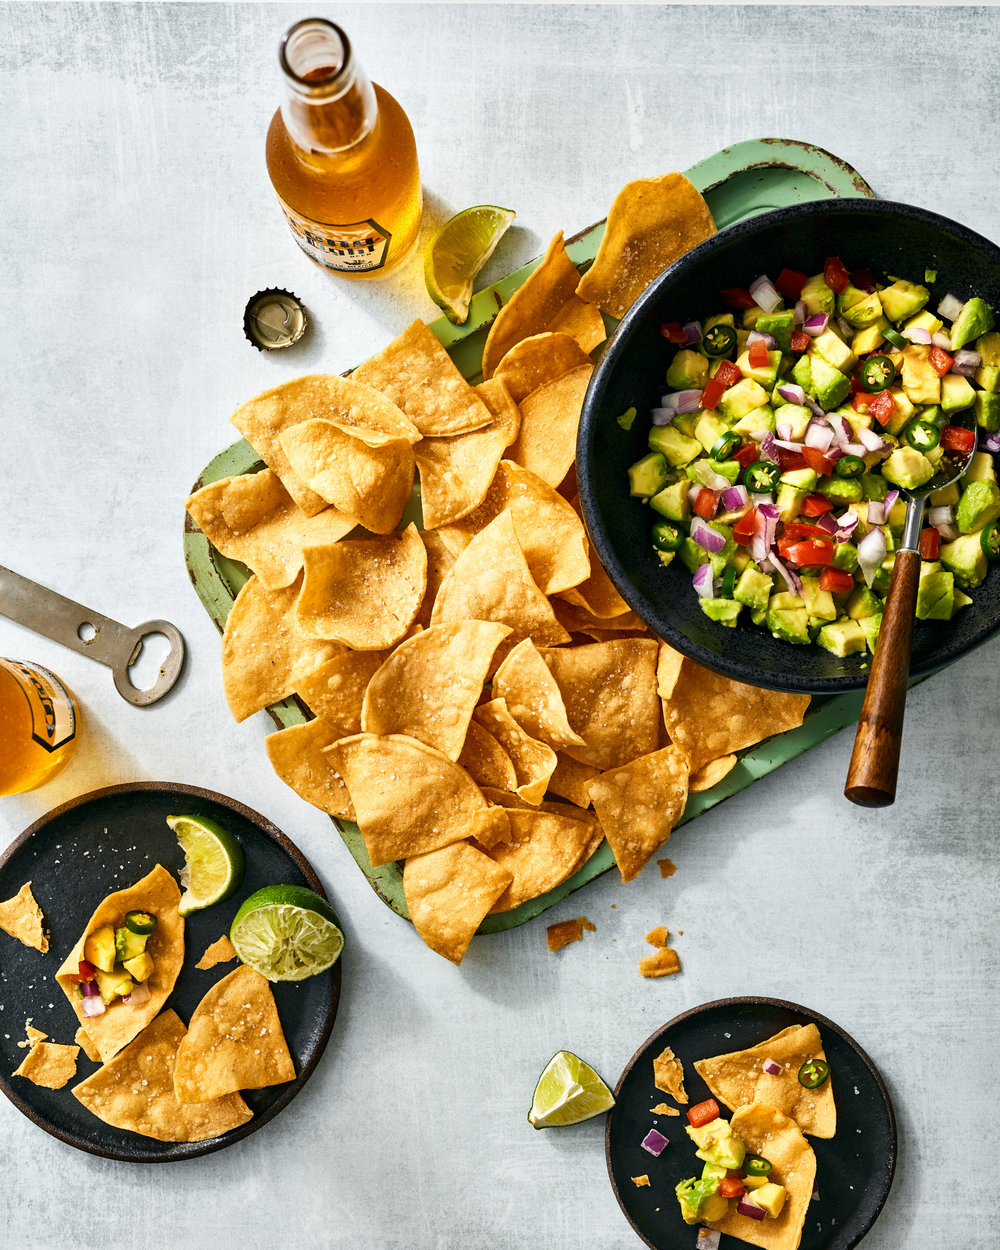 food-guacamole-chips-lesliegrow.jpg